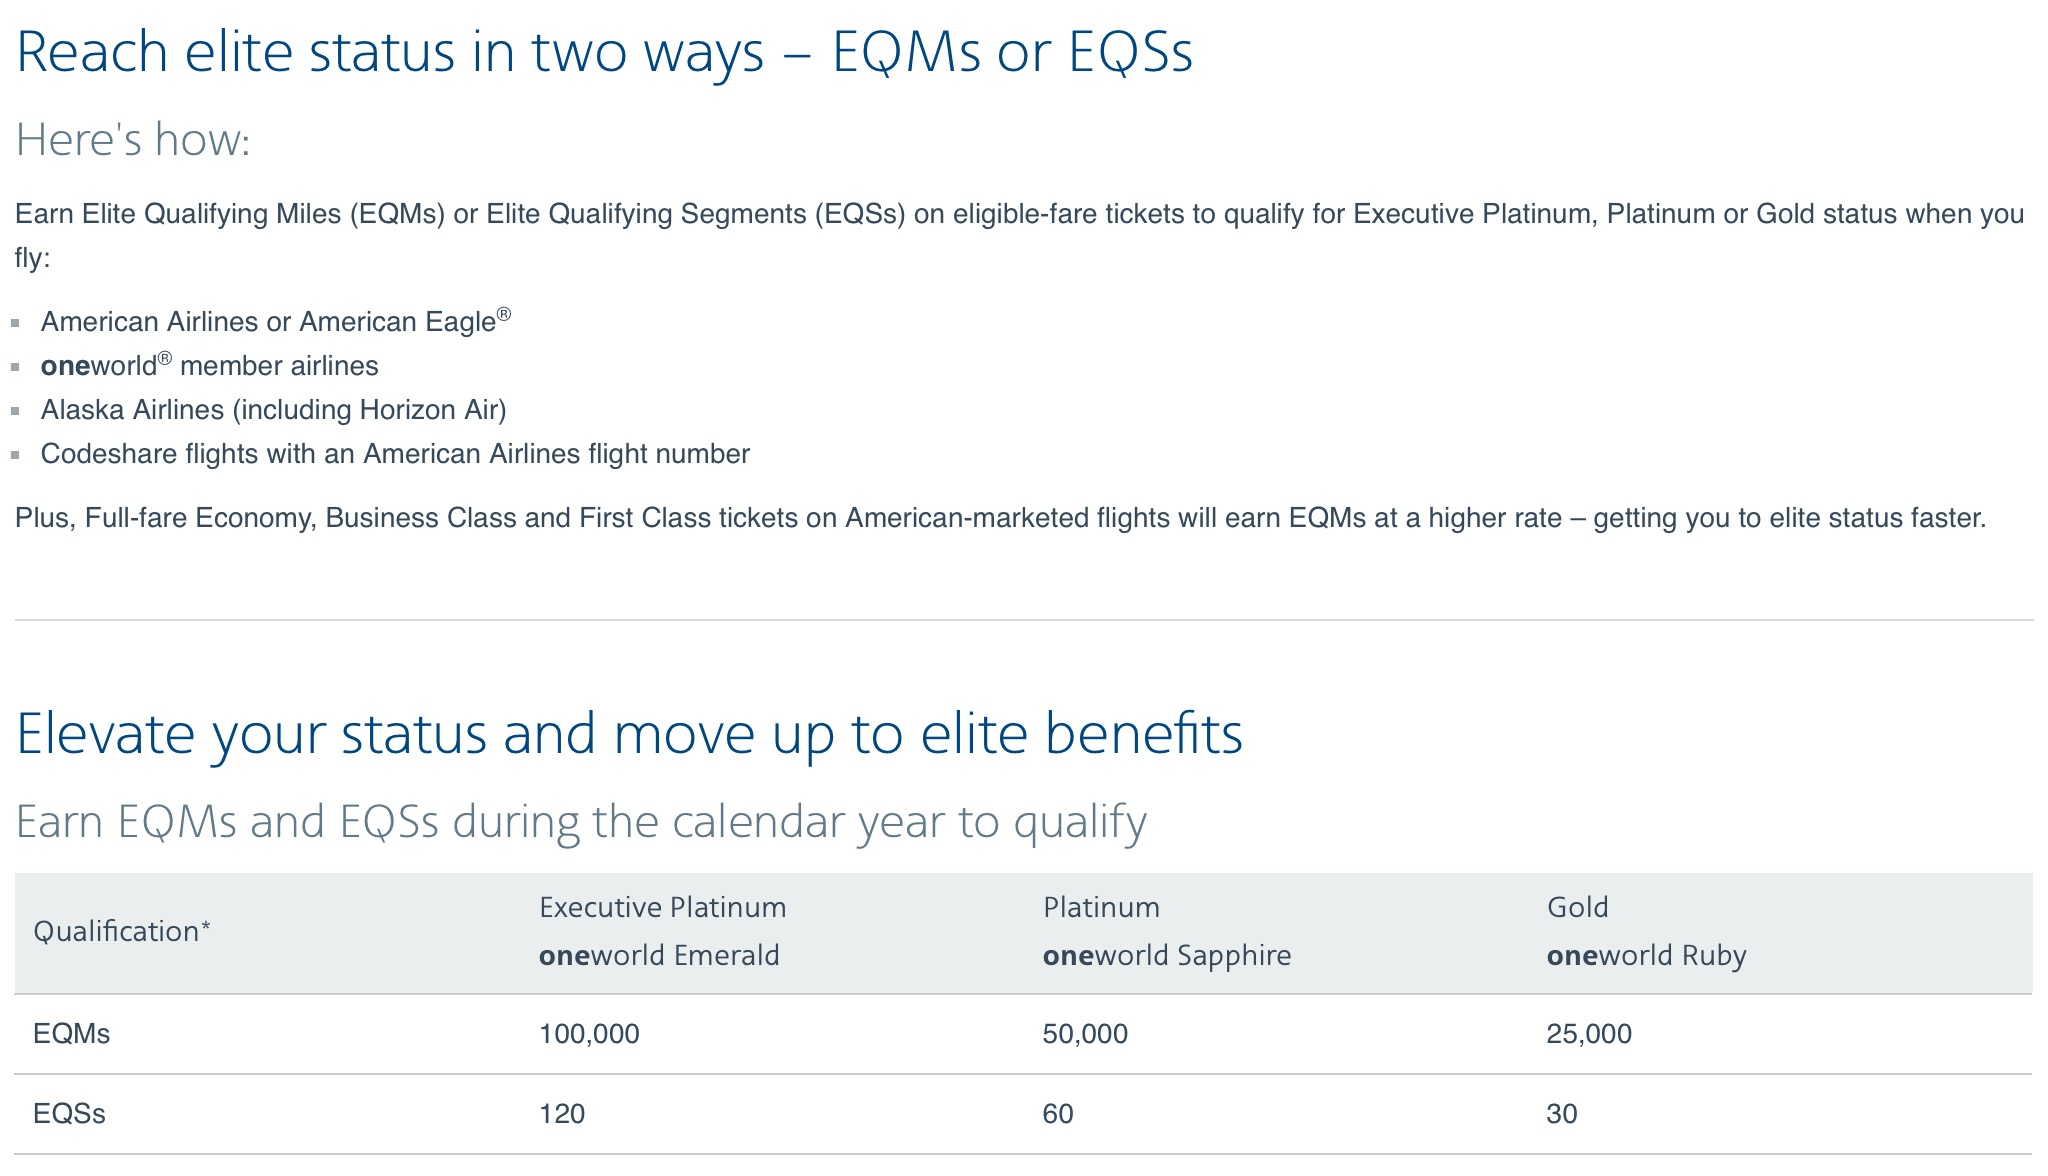 Get American Airlines Elite Status With Only Credit Card